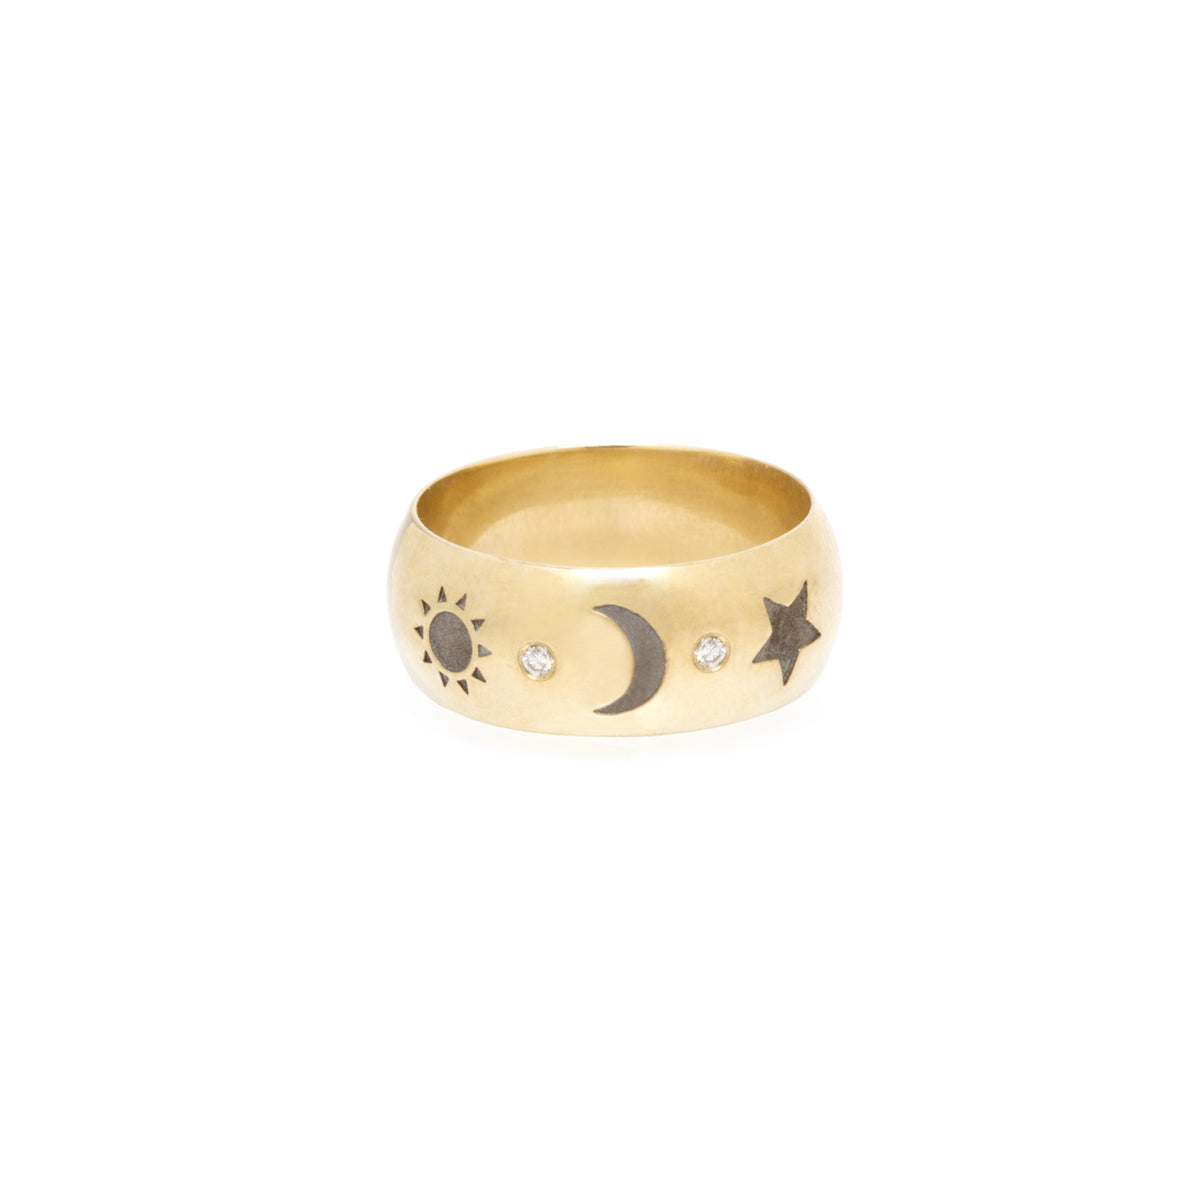 14k Total Eclipse Wide Band Ring with Engraved Sun, Moon & Star